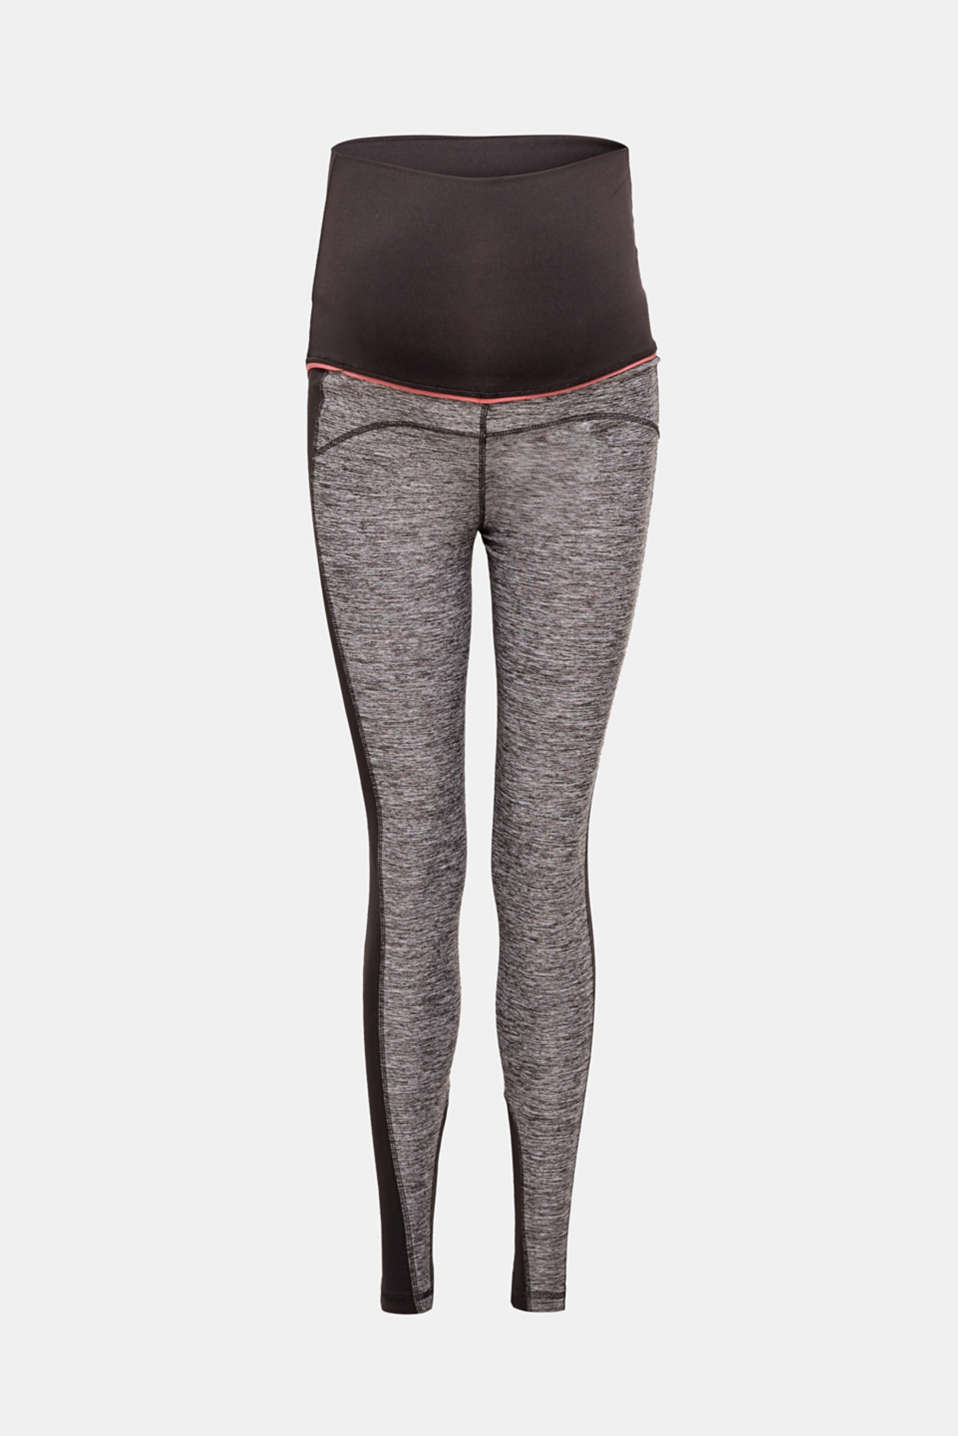 Esprit - High-performance leggings in blended material